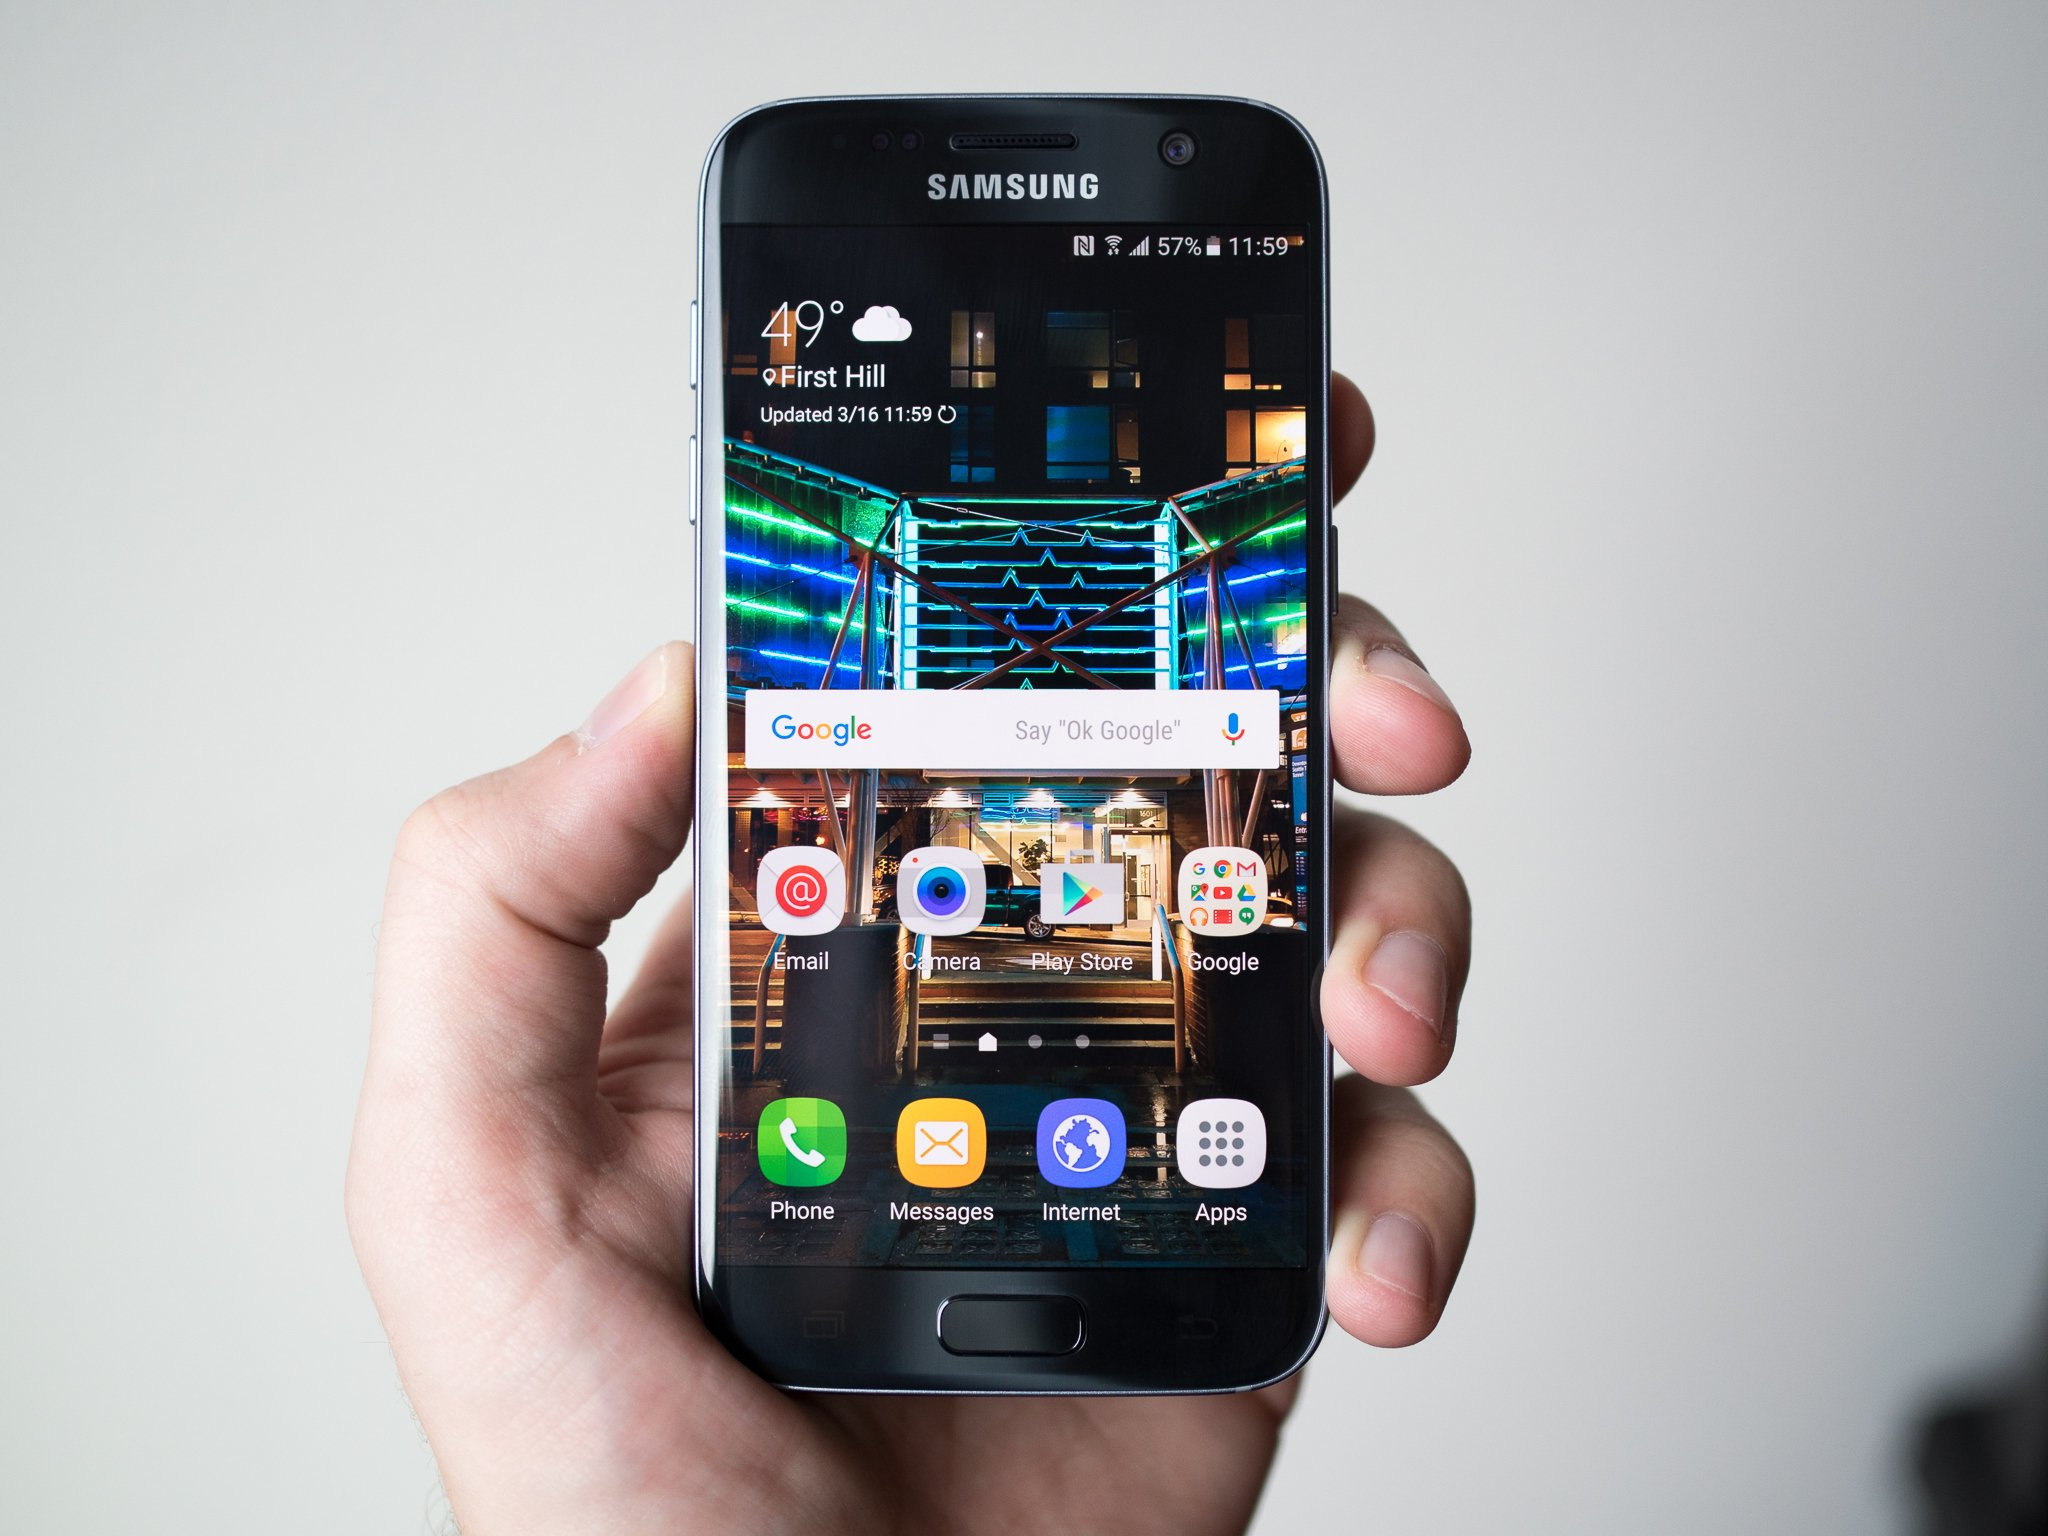 Samsung Screen How To Manage Home Screen Settings On The Samsung Galaxy S7